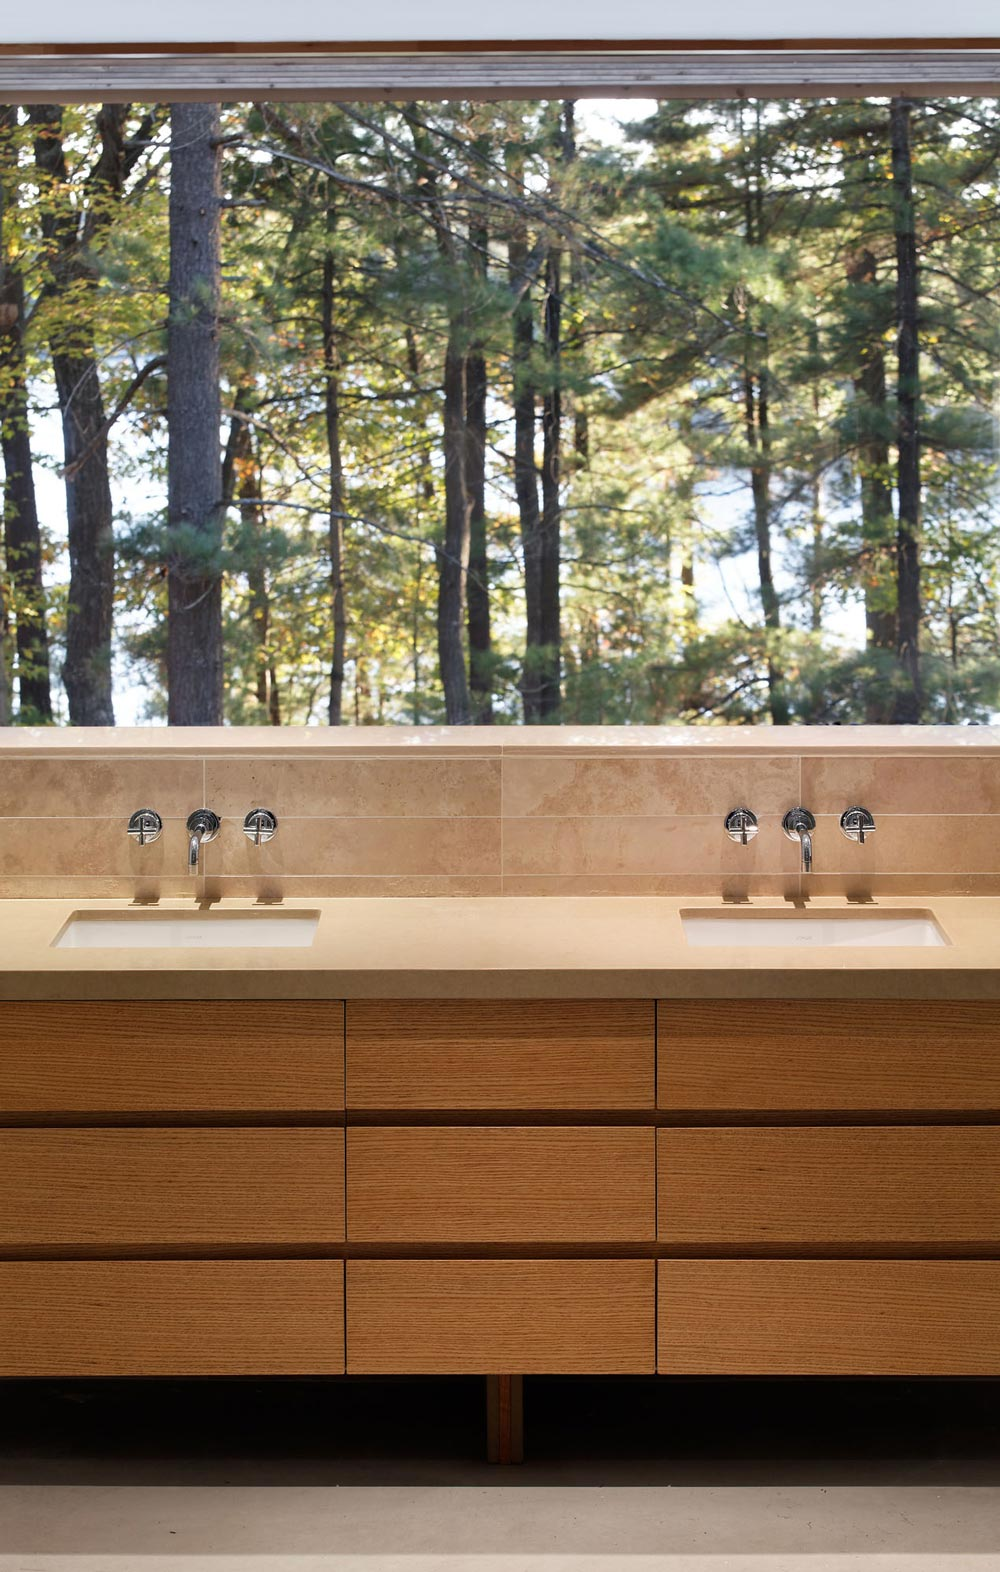 Bathroom, Twin Sinks, Carling Residence in Ontario, Canada by TACT Architecture